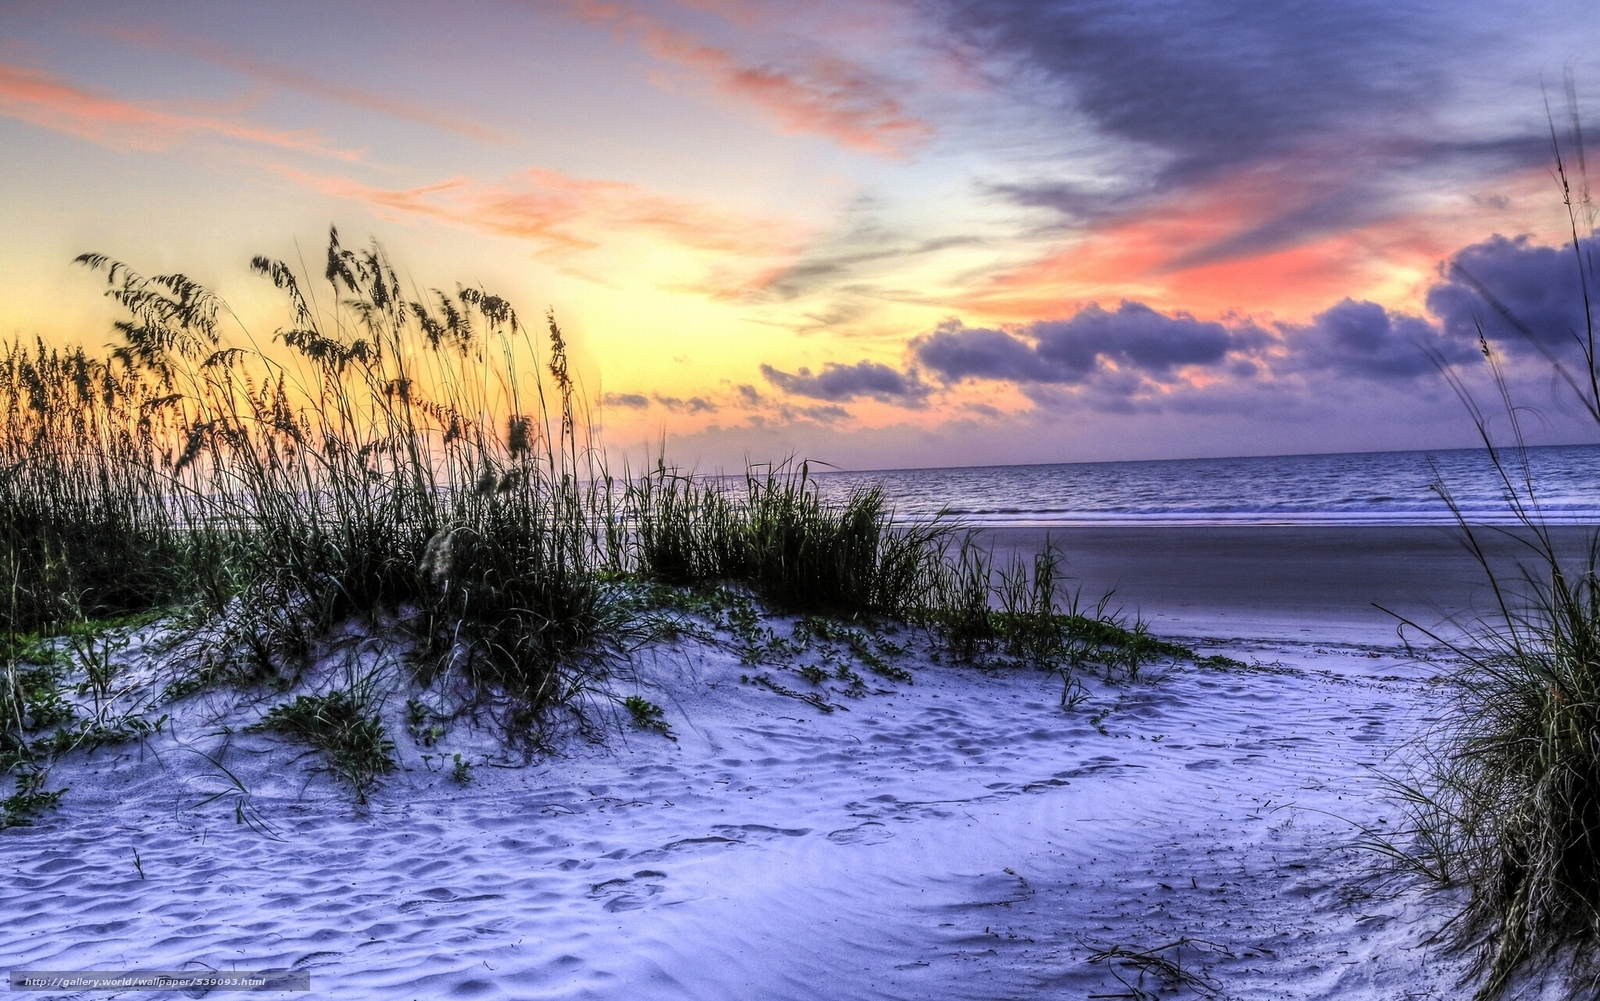 Download wallpaper Hilton Head Island South Carolina Atlantic Ocean 1600x1001